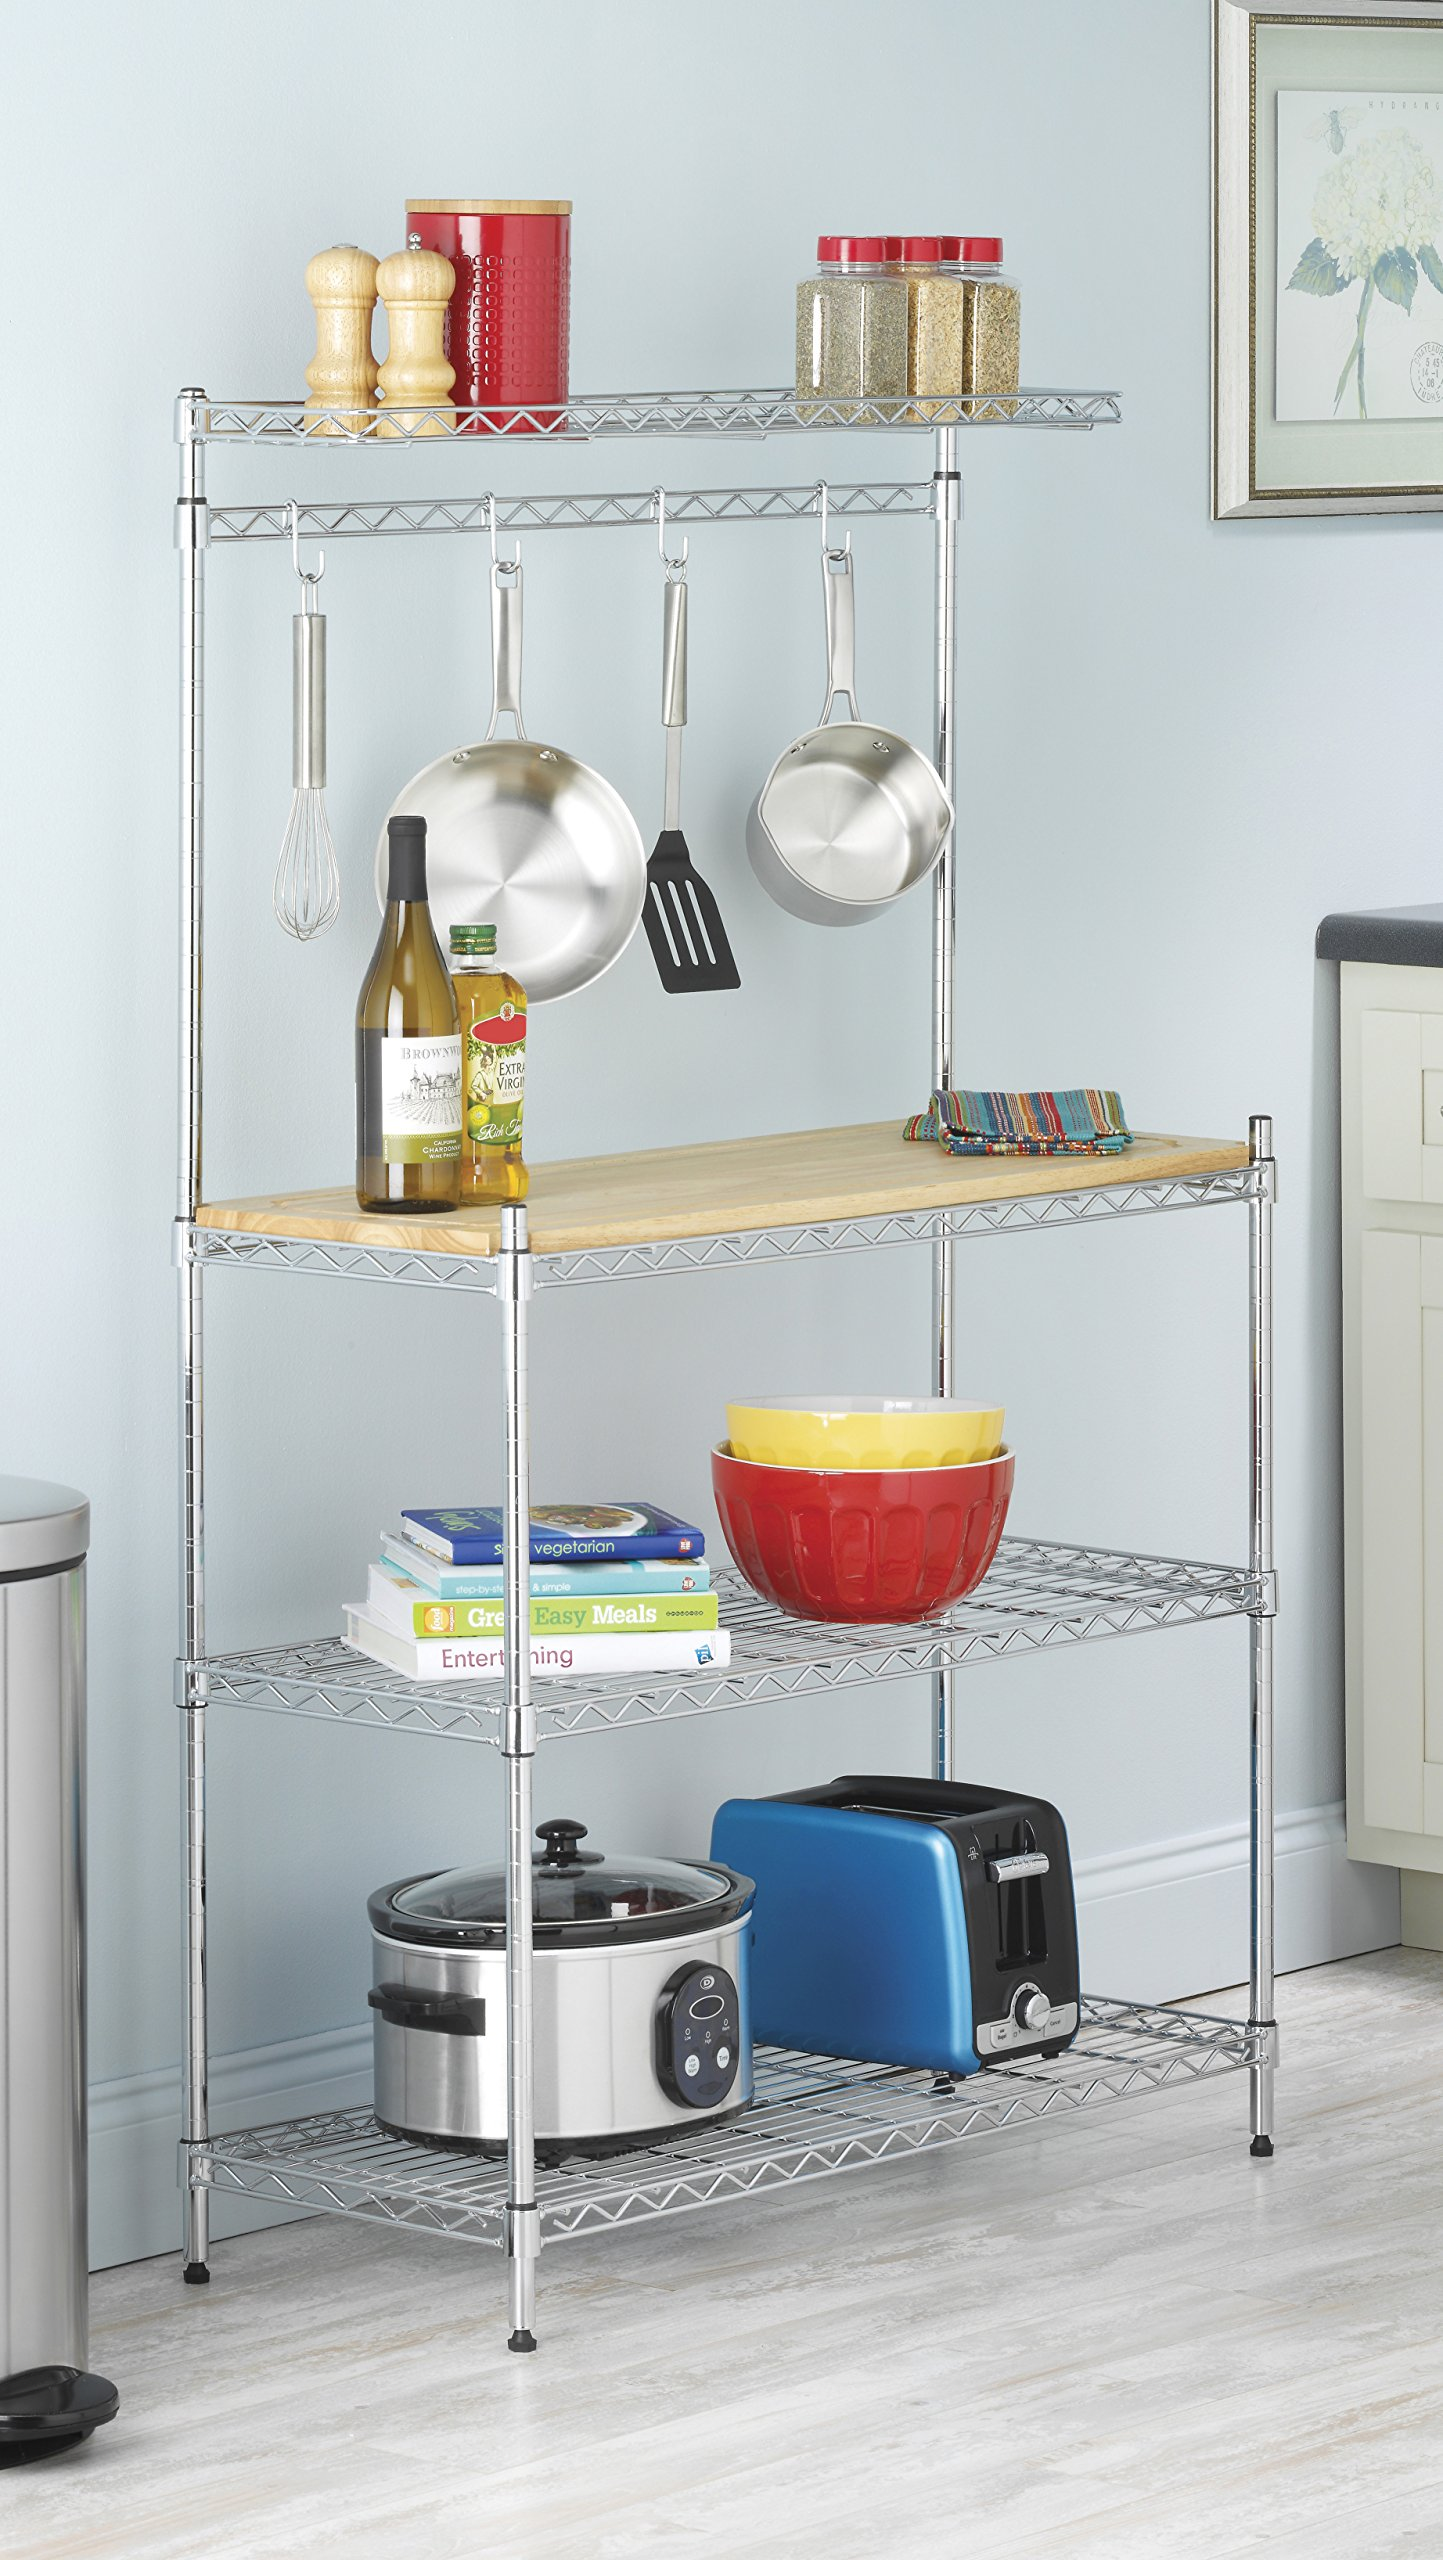 Whitmor Supreme Baker's Rack with Food Safe Removable Wood Cutting Board - Chrome by Whitmor (Image #3)